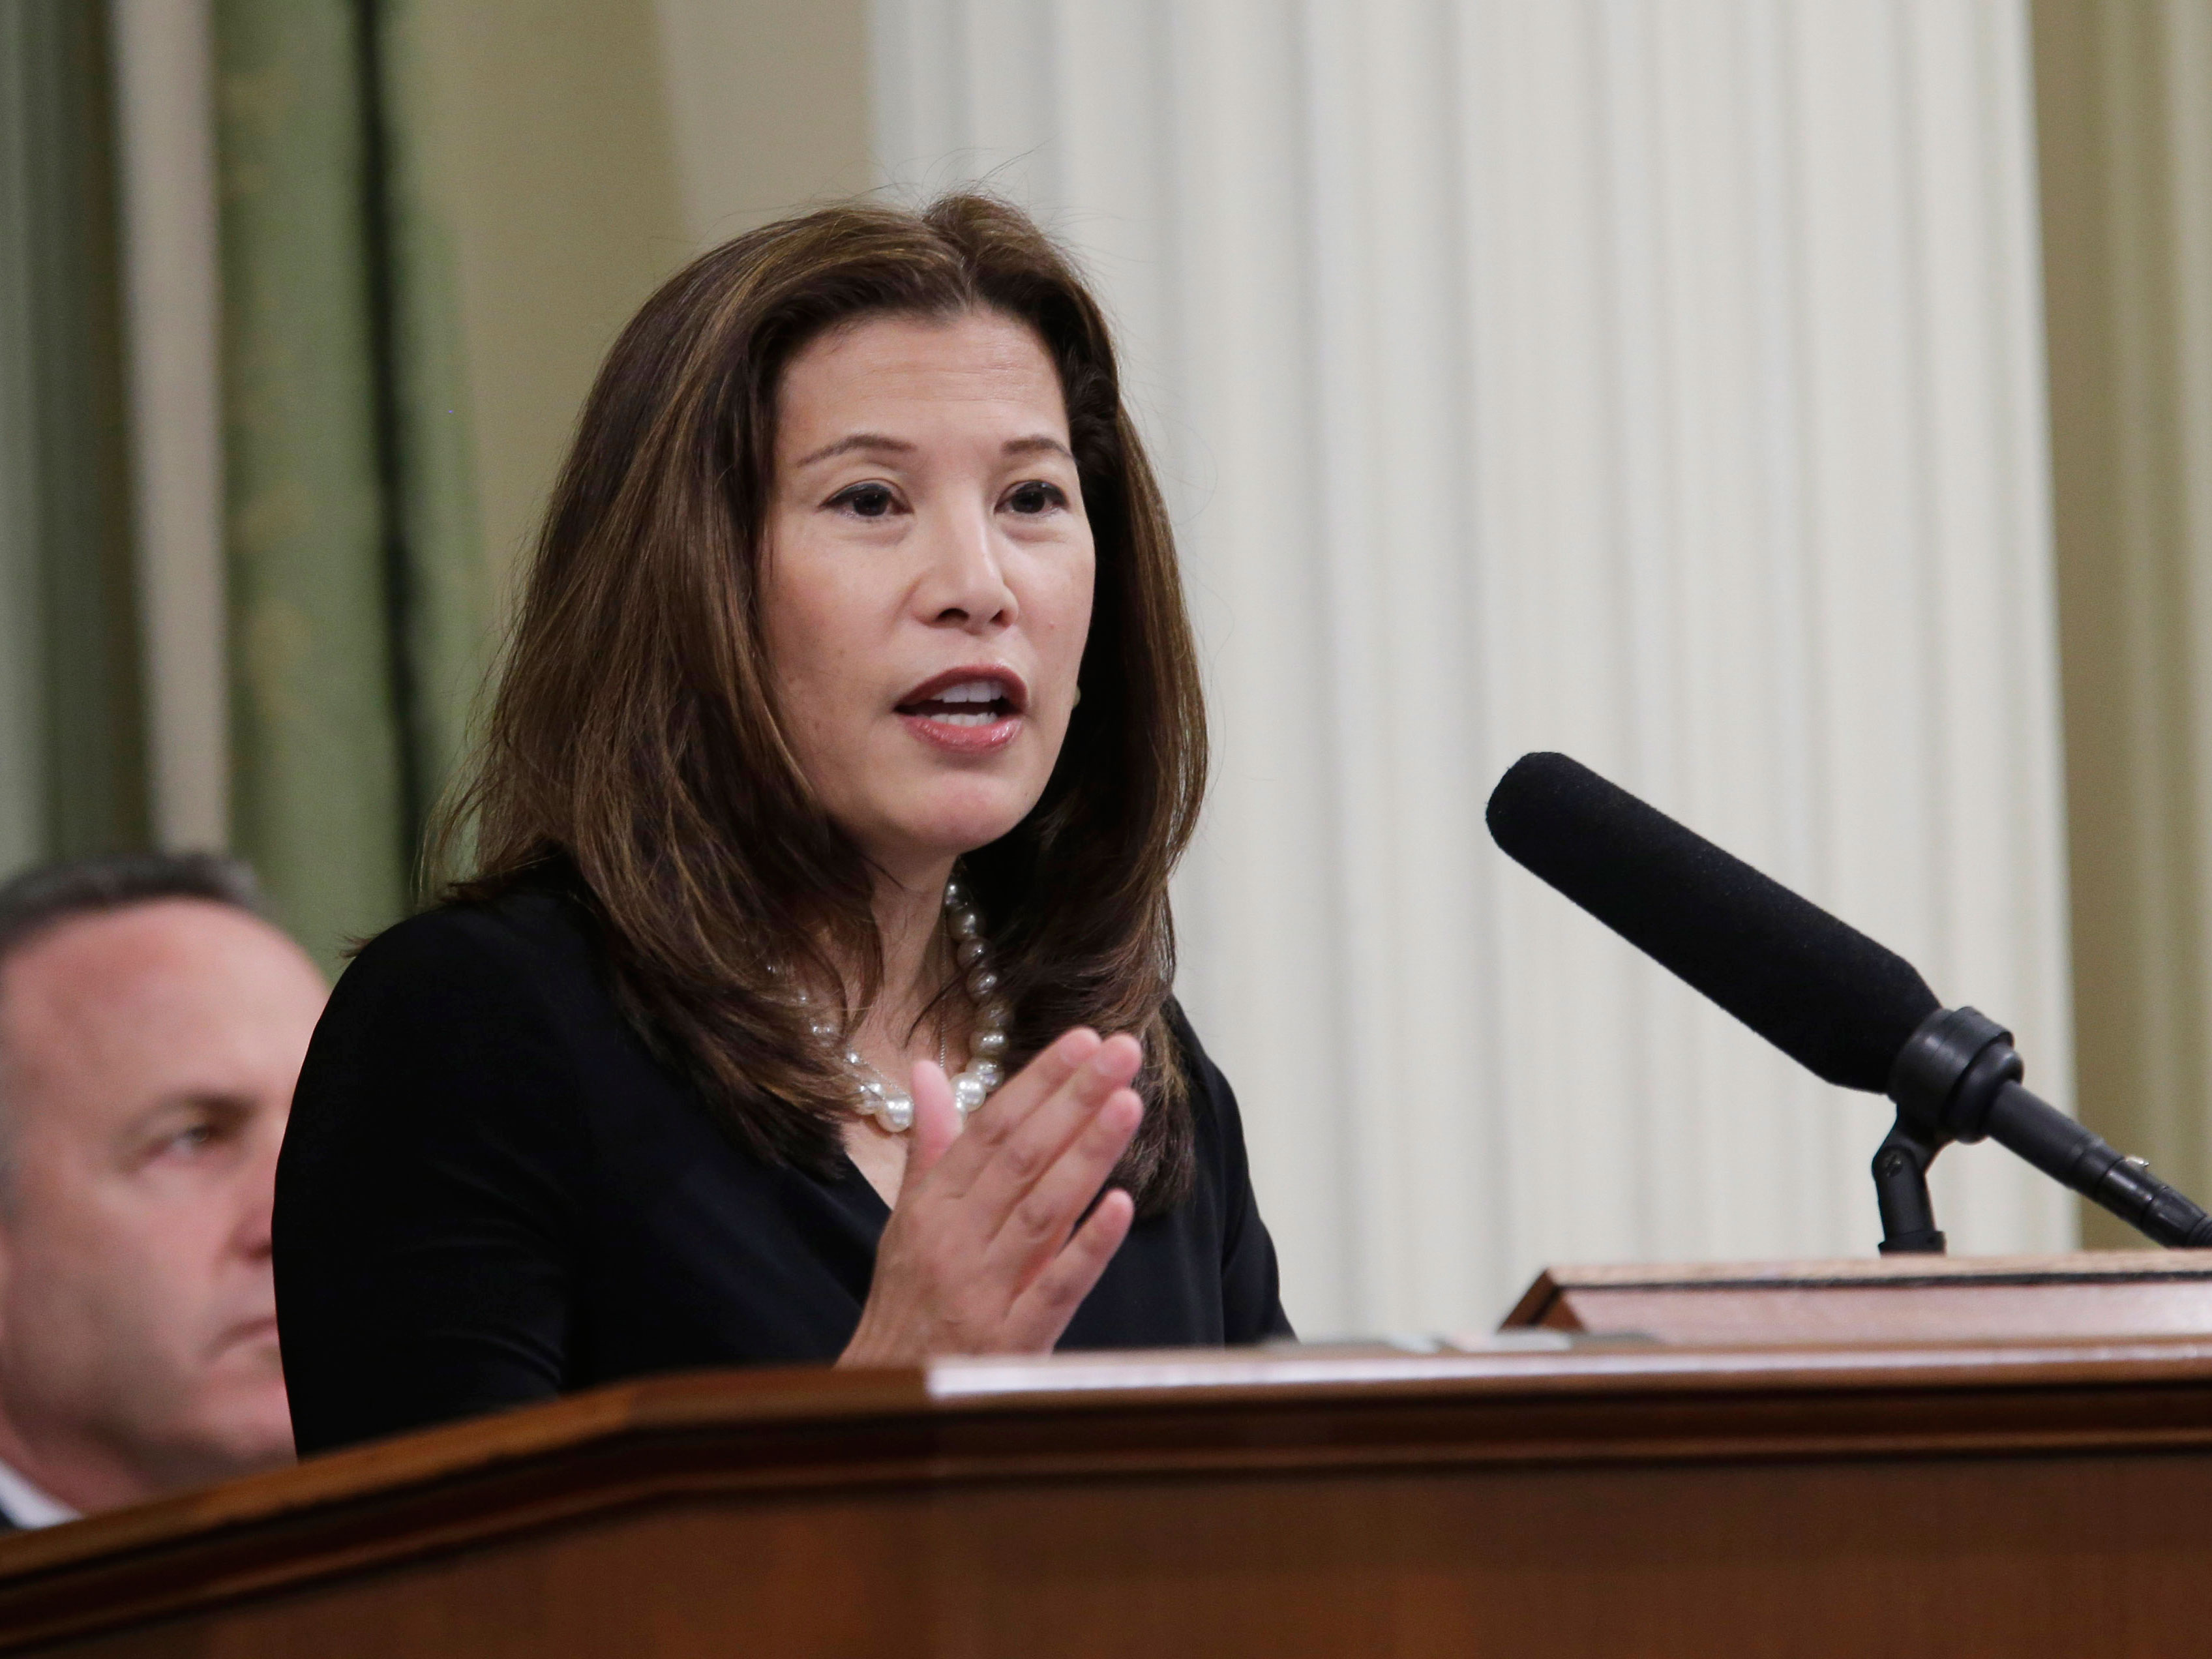 California S Chief Justice Comments On Tensions Between